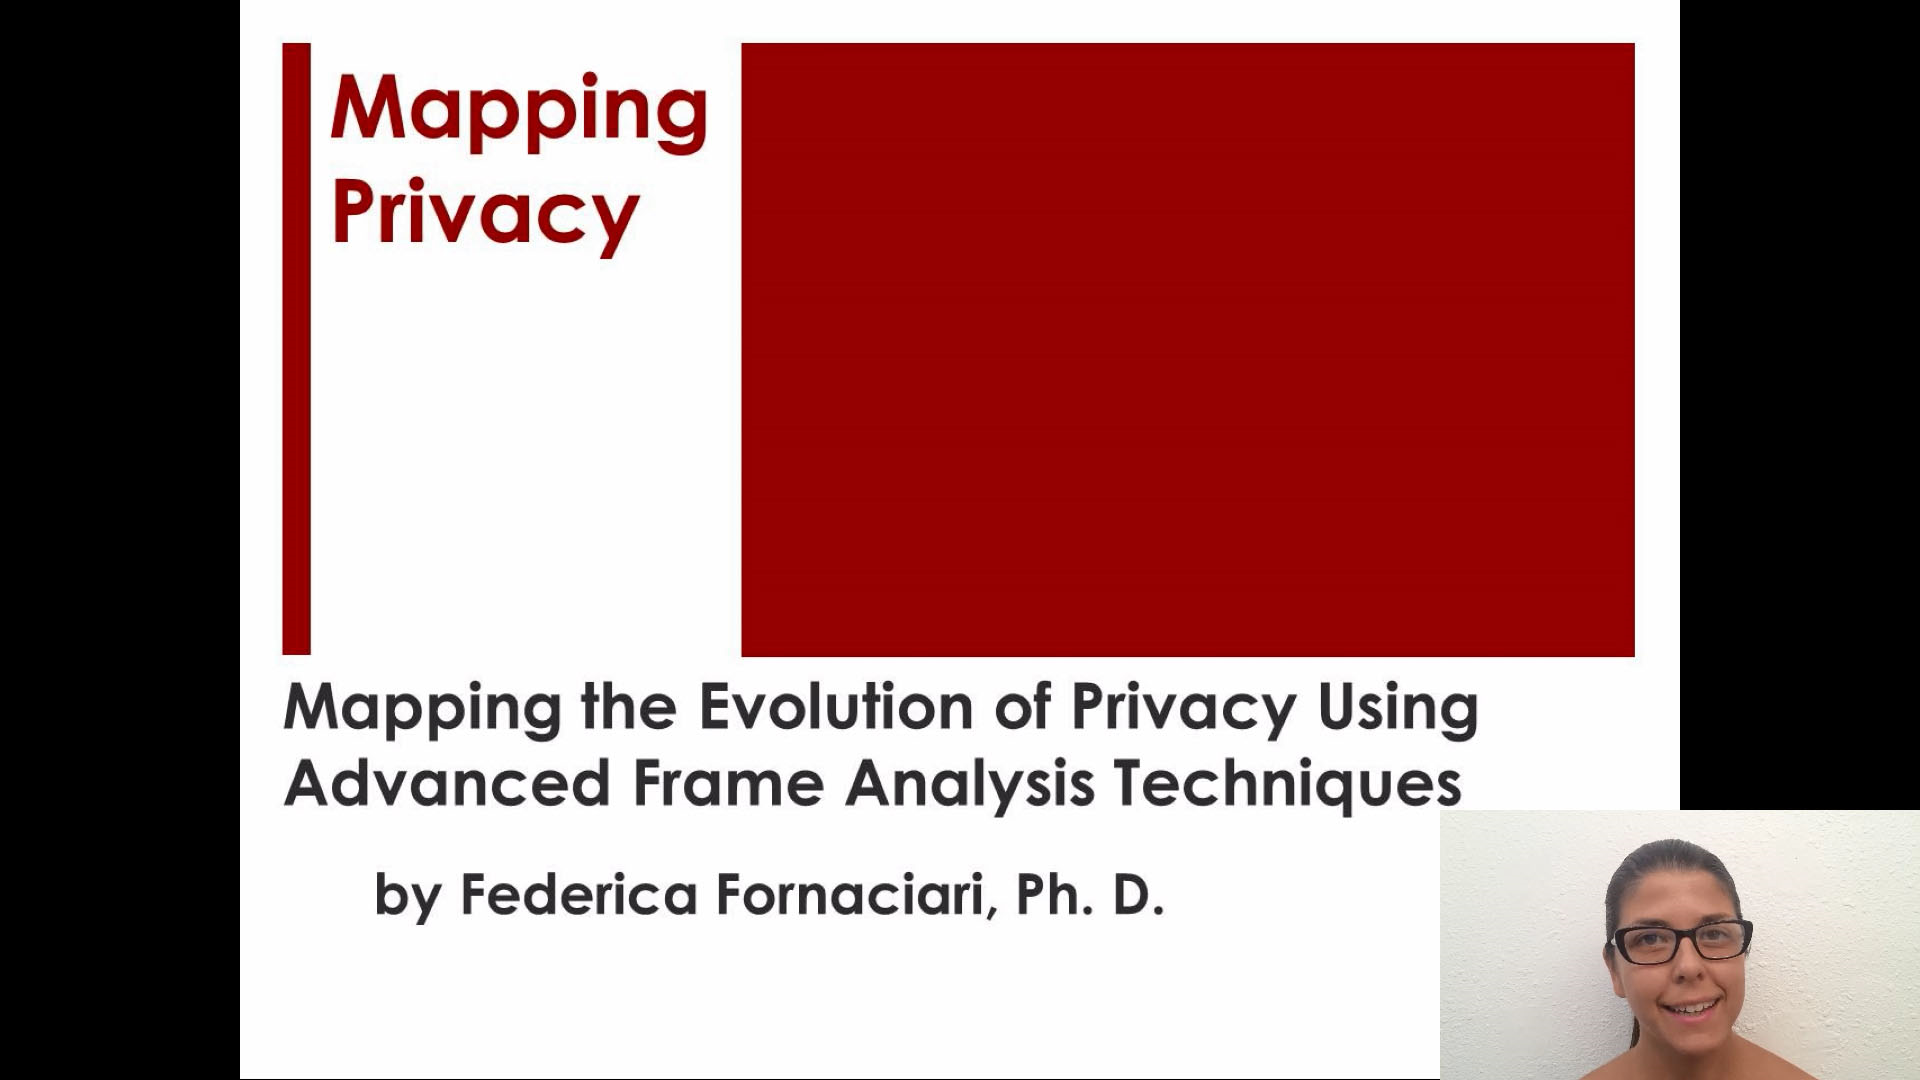 Mapping the Evolution of Privacy Using Advanced Frame Analysis Techniques